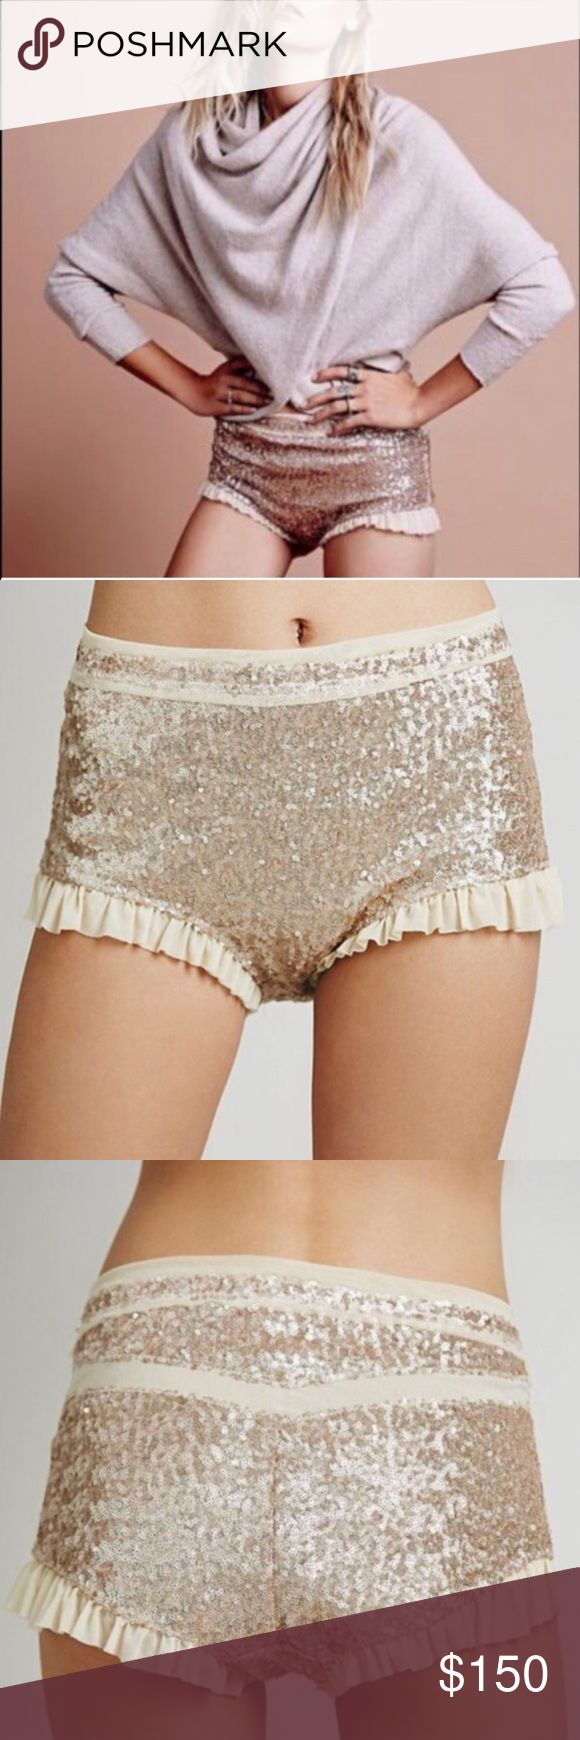 Free people NWOT sequin shorts Brand NEW! Sold out everywhere! Rare find! Gold sequin shorts! Very stretchy! Size xs! In love with these and not sure I want to sell so make me an offer I can't refuse! Free People Intimates & Sleepwear